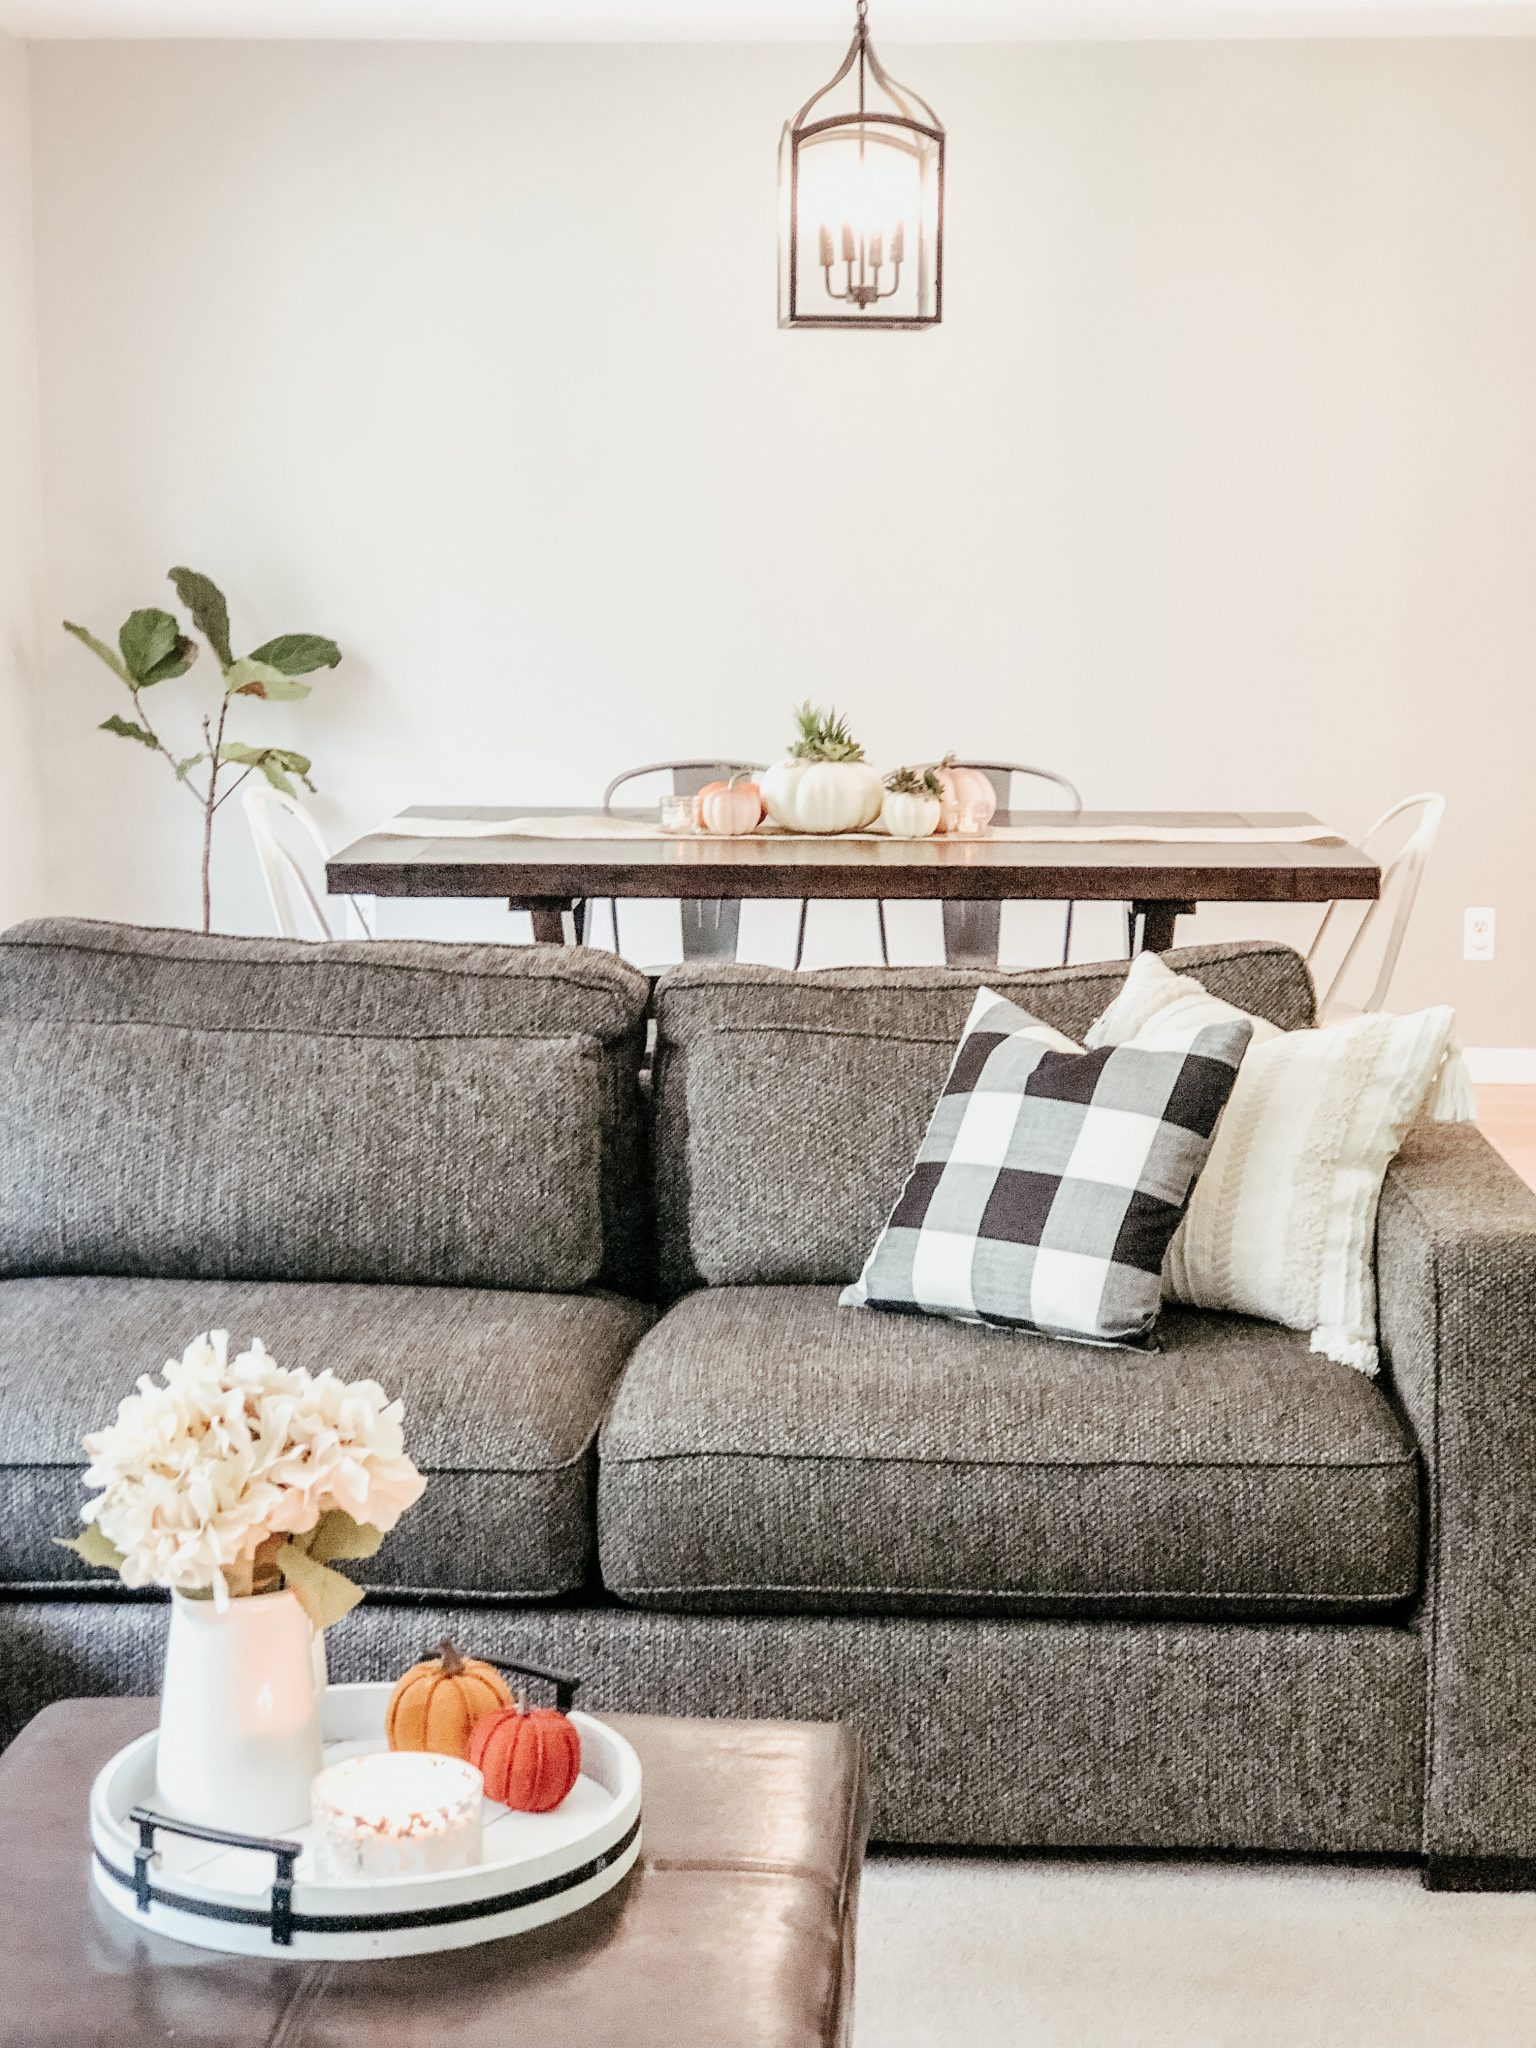 Fall Decor Home Tour | Daily Splendor Life and Style Blog | fall living room decor #throwpillows #pumpkins #fallpillows #cozyfall